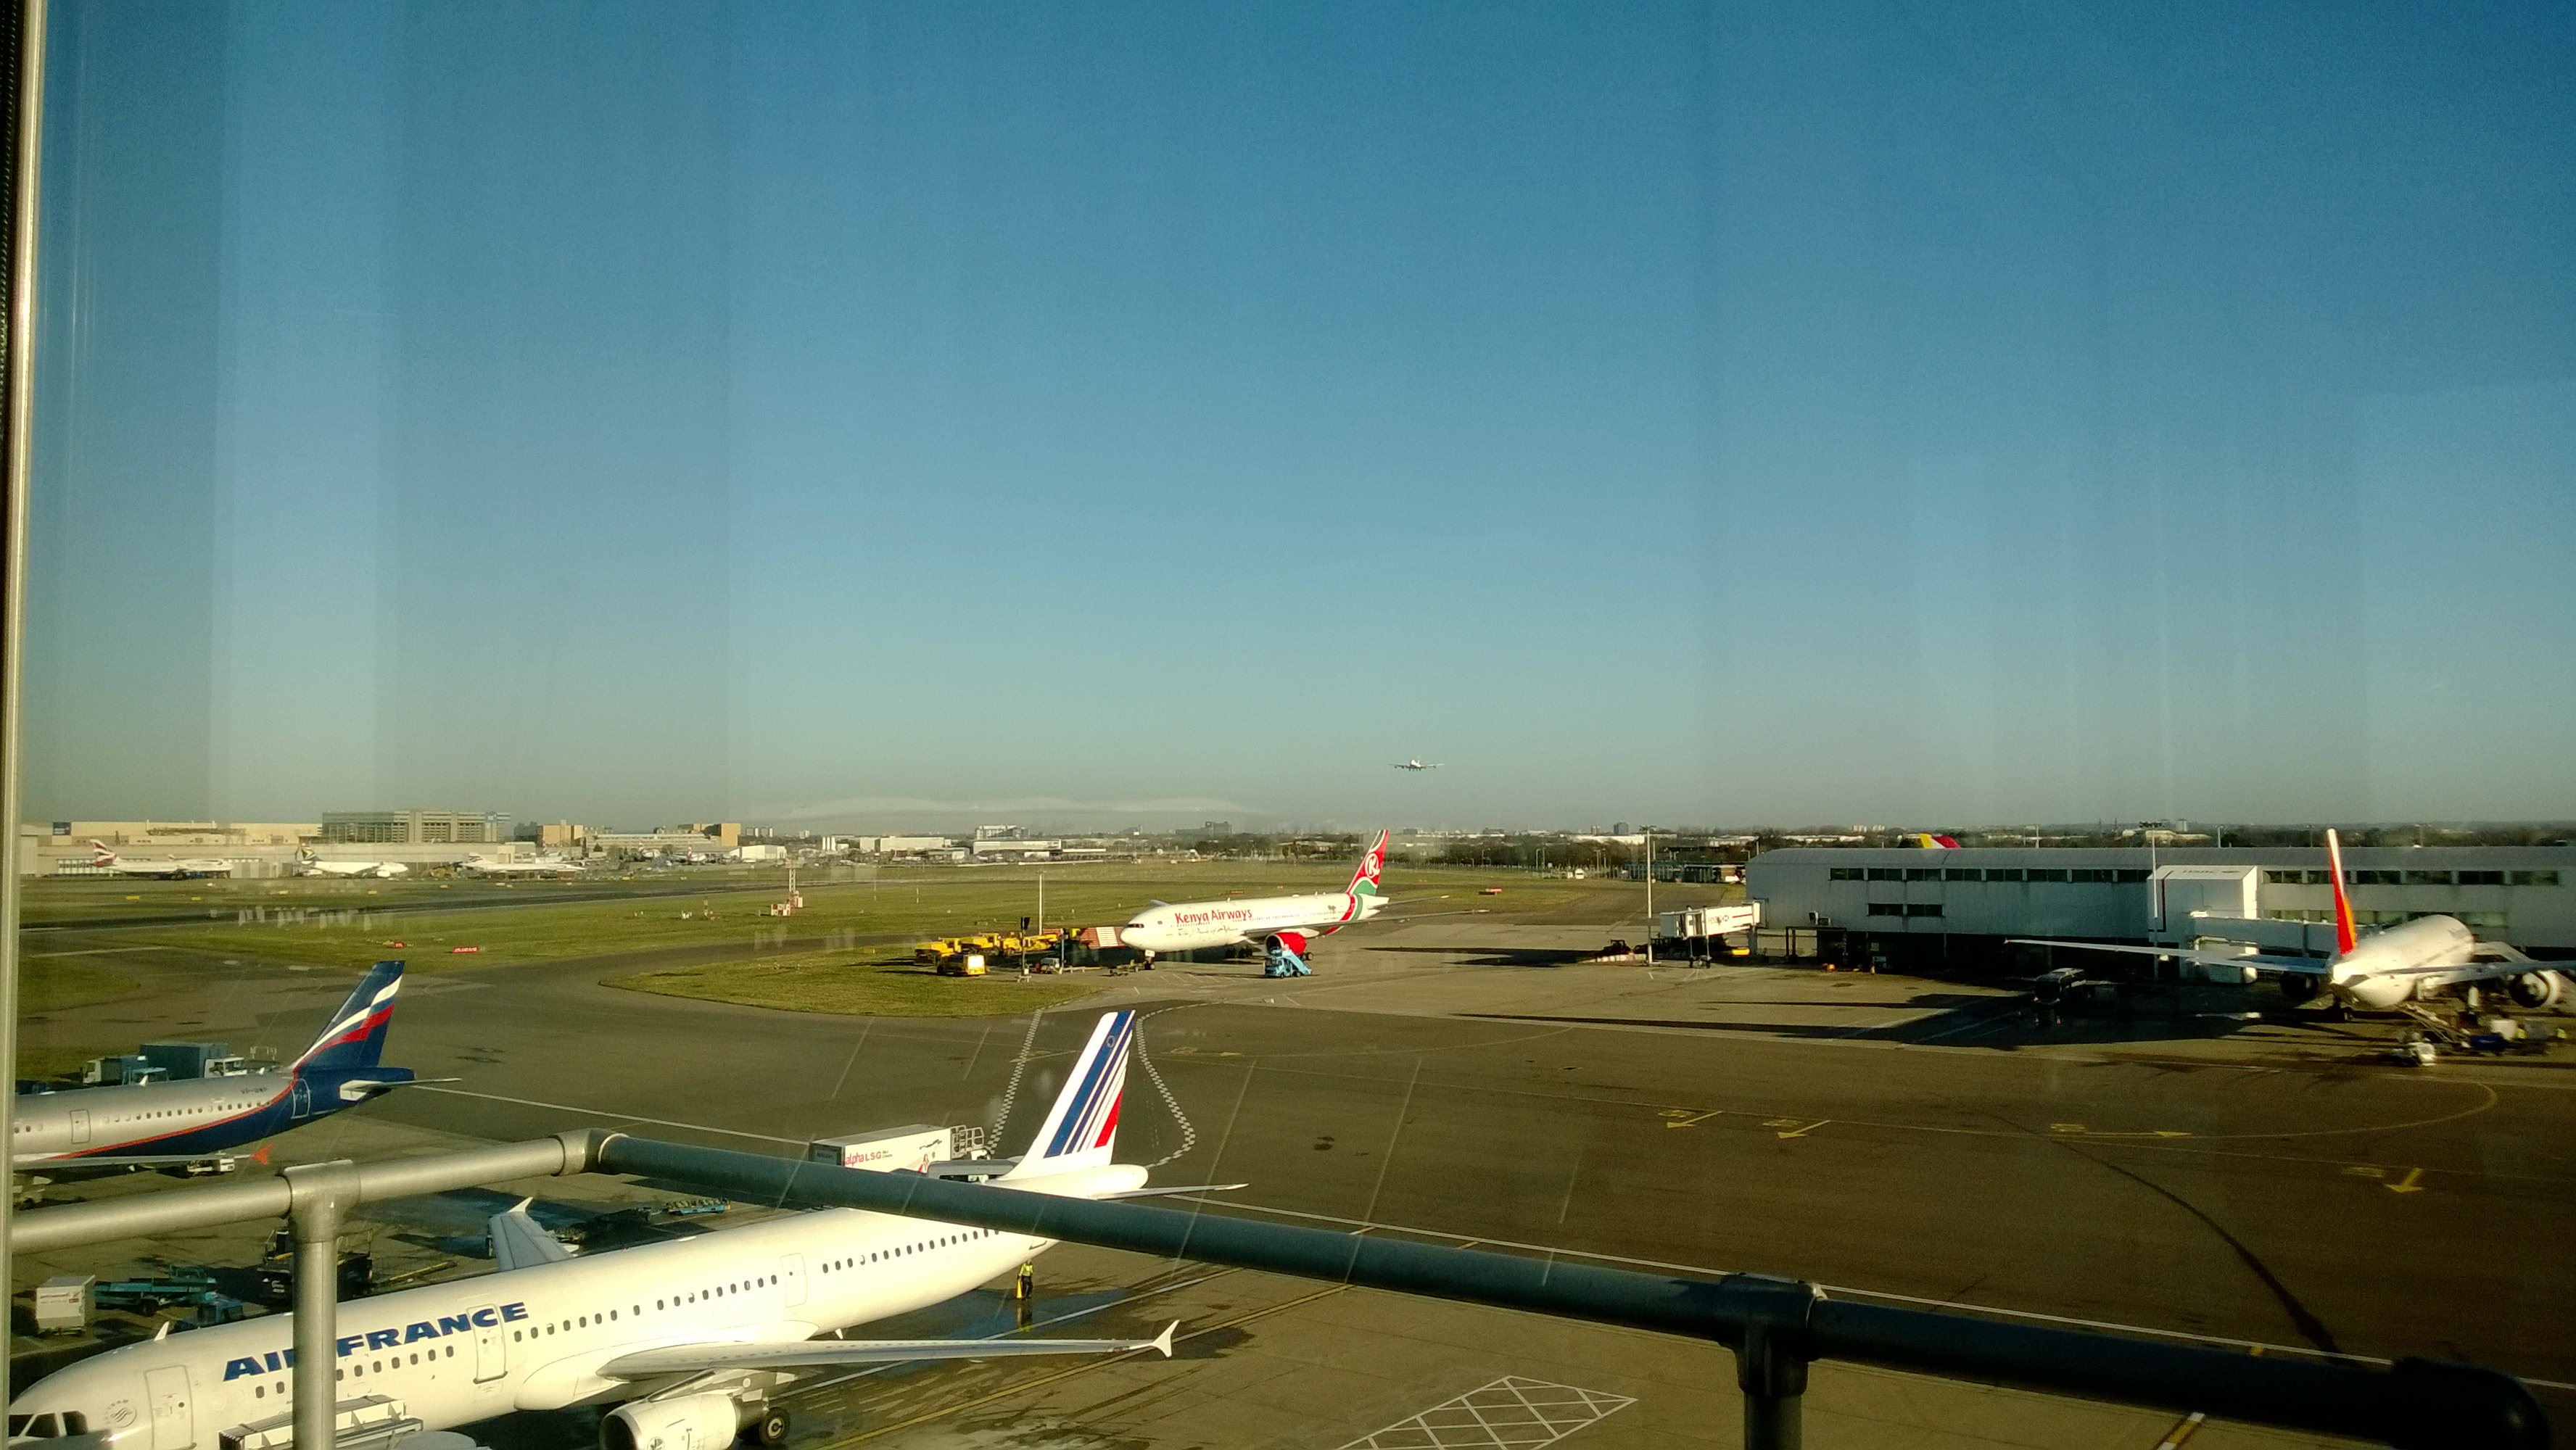 View from the Heathrow Airport (London) Observation Desk